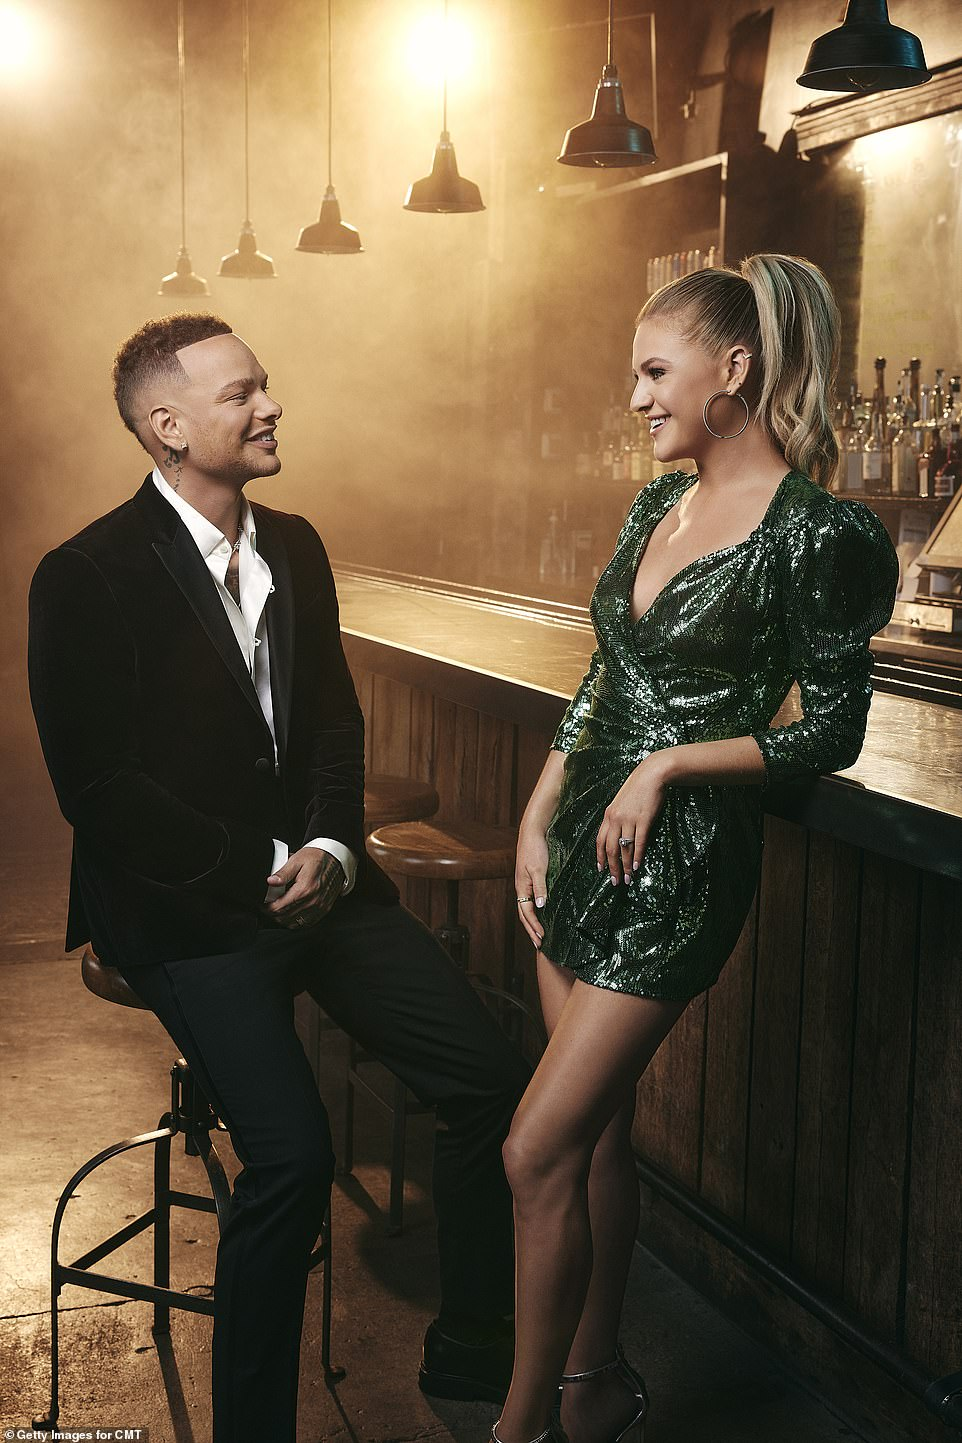 Hosts and nominees: Both artists are nominated for three awards each this year. Kane recalled winning his first industry award at the ceremony in a statement last month